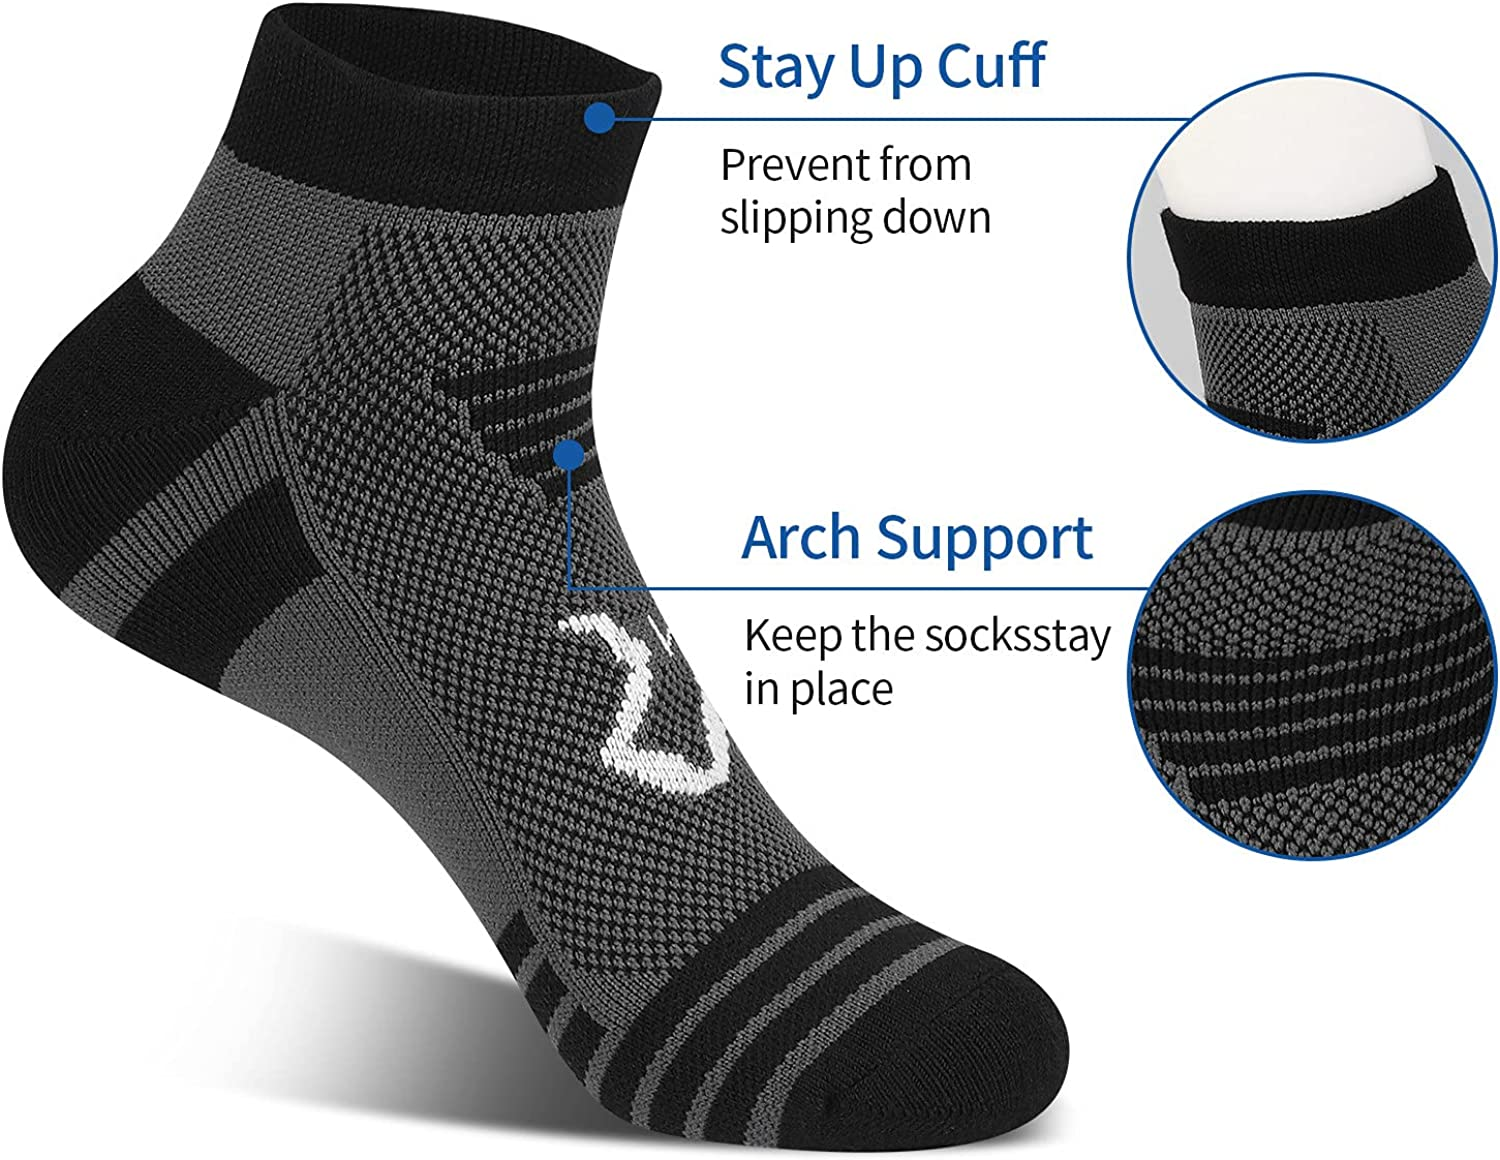 MWUS Men's Running Socks with Cushion, 6 Pack Sport Ankle Athletic Socks : Sports & Outdoors